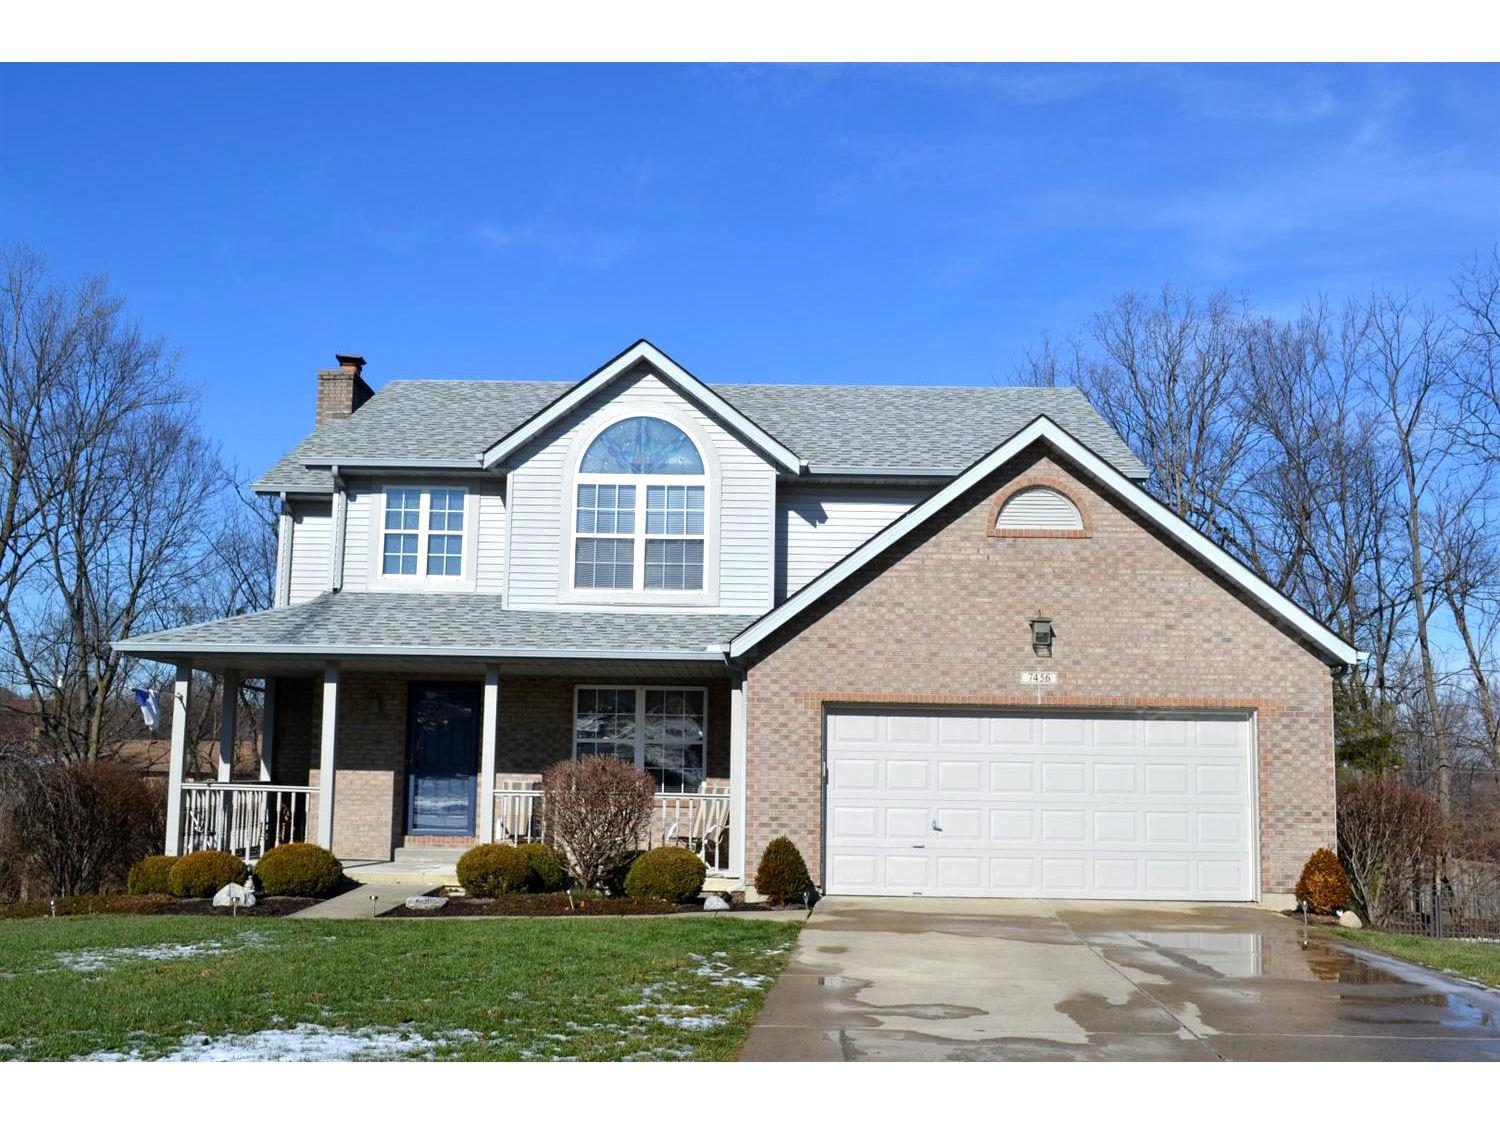 7456 Polo Springs Court, Fairfield, OH 45014